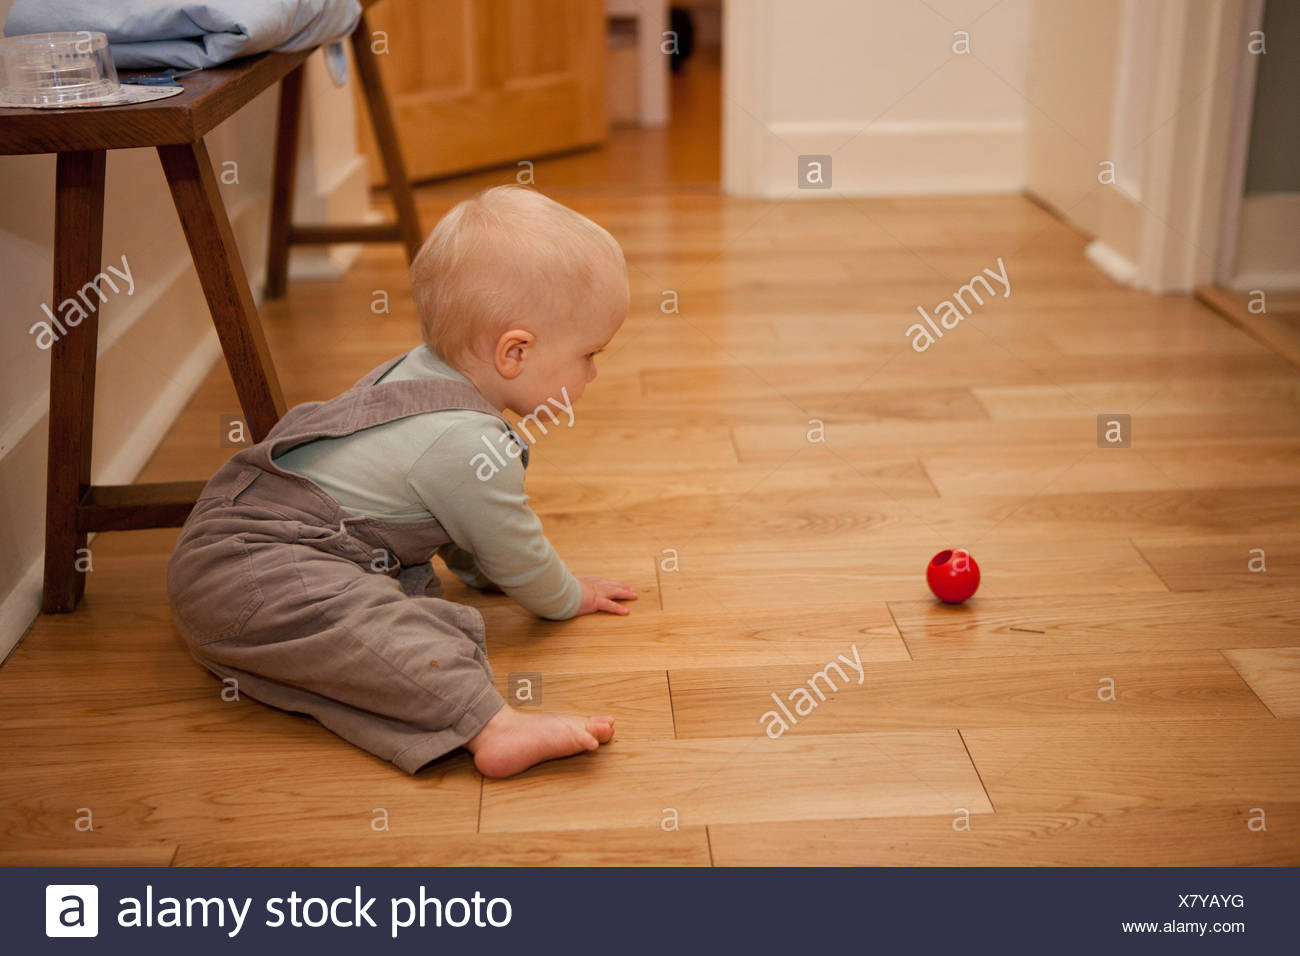 Baby boy playing with ball on the floor - Stock Image